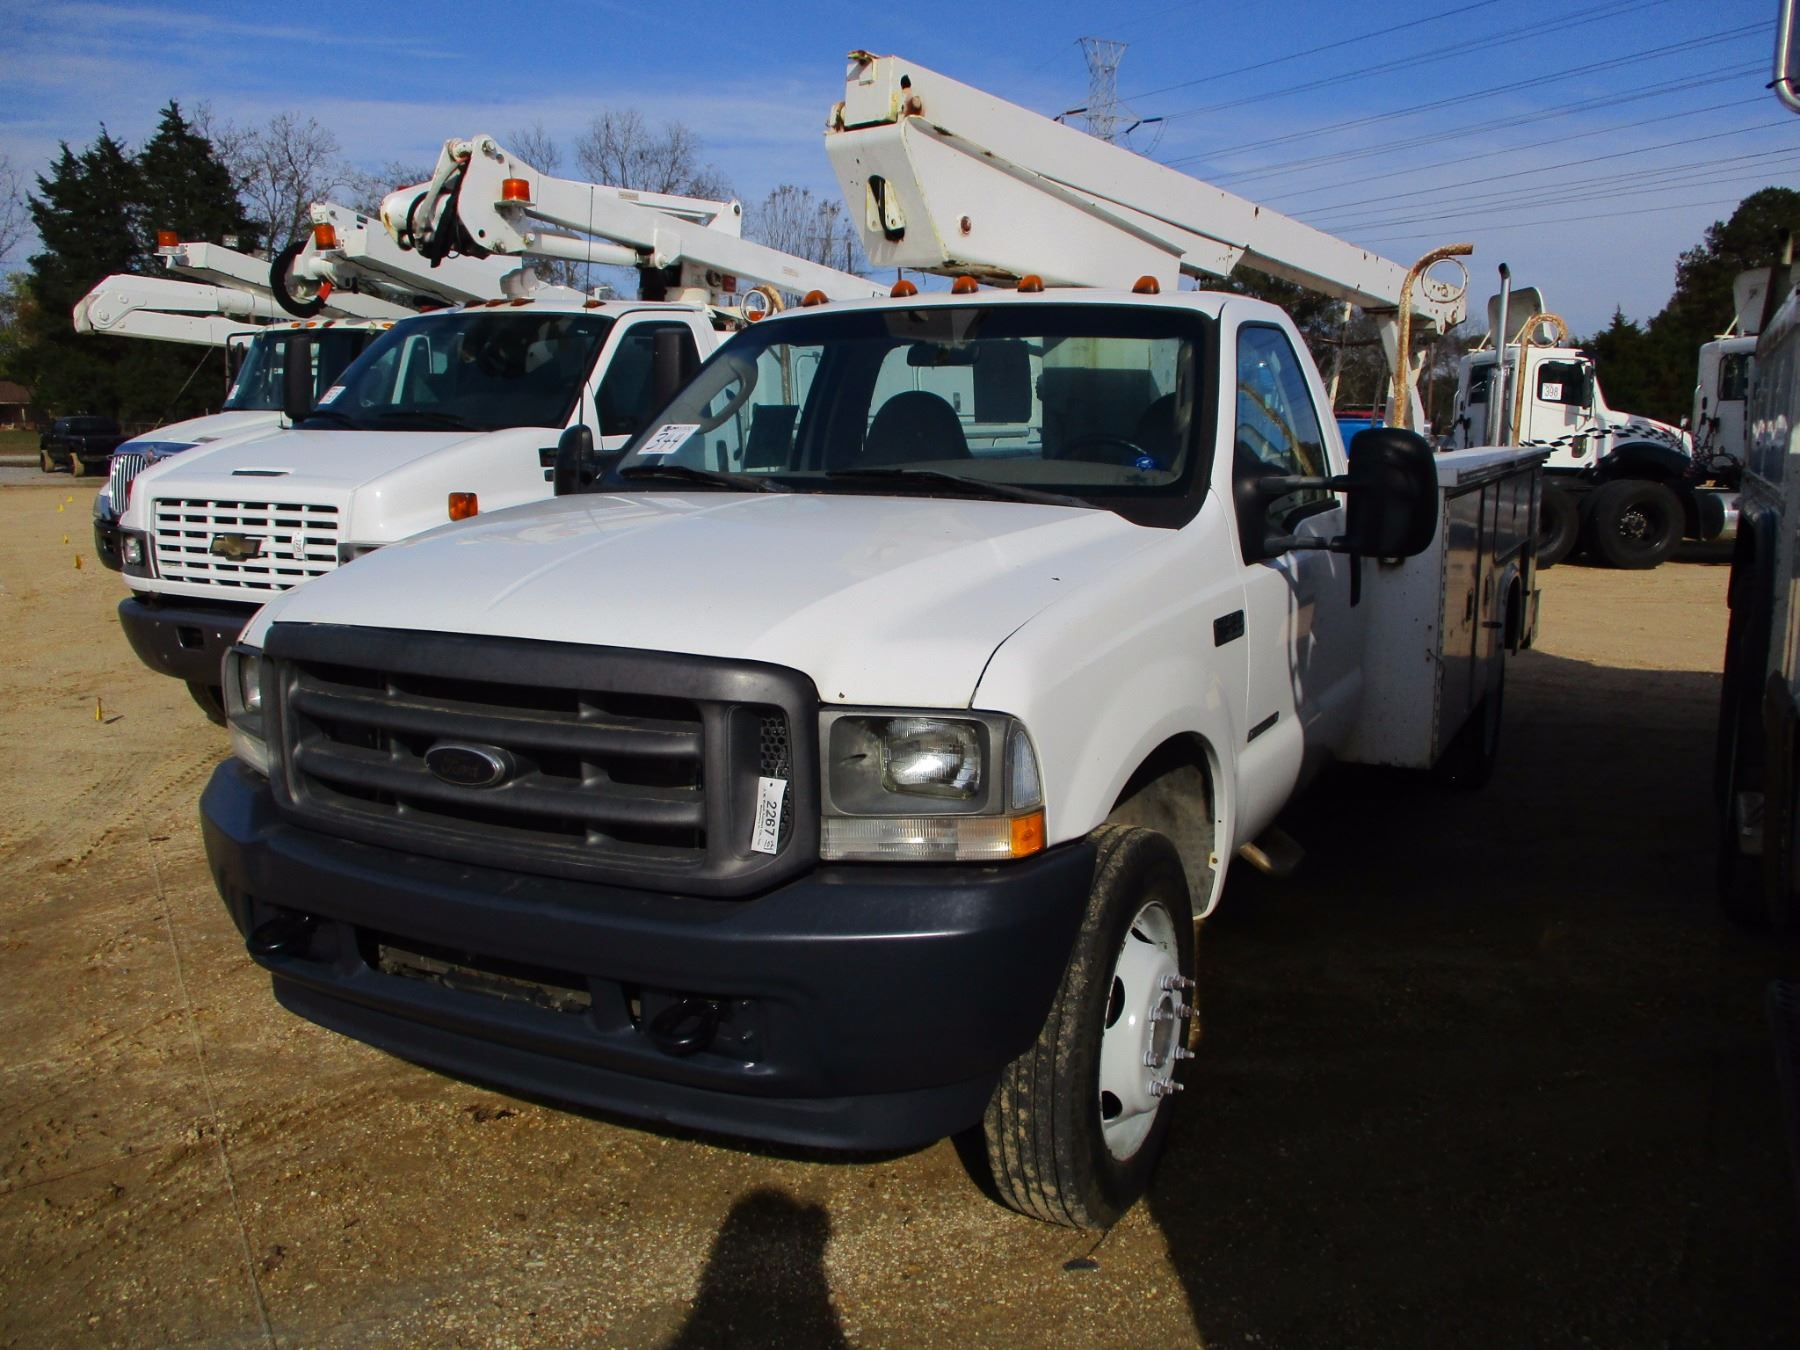 small resolution of image 1 2003 ford f450 bucket truck vin sn 1fdxf45f93ea63293 7 3